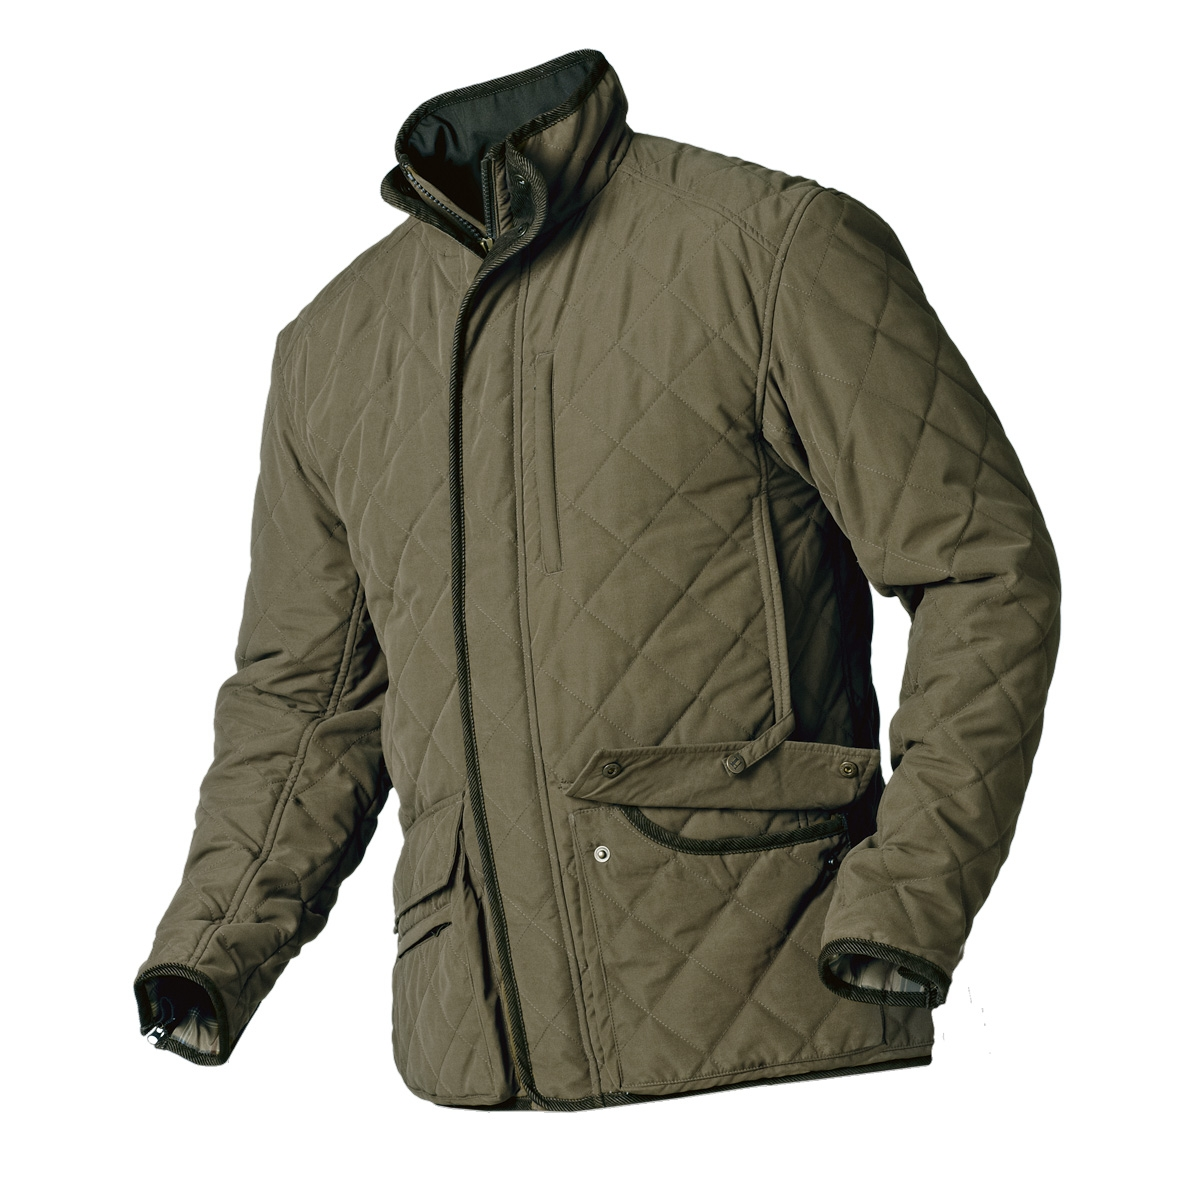 Harkila Altnahara Quilted Jacket - Willow Green | Uttings.co.uk : quilted jacket green - Adamdwight.com